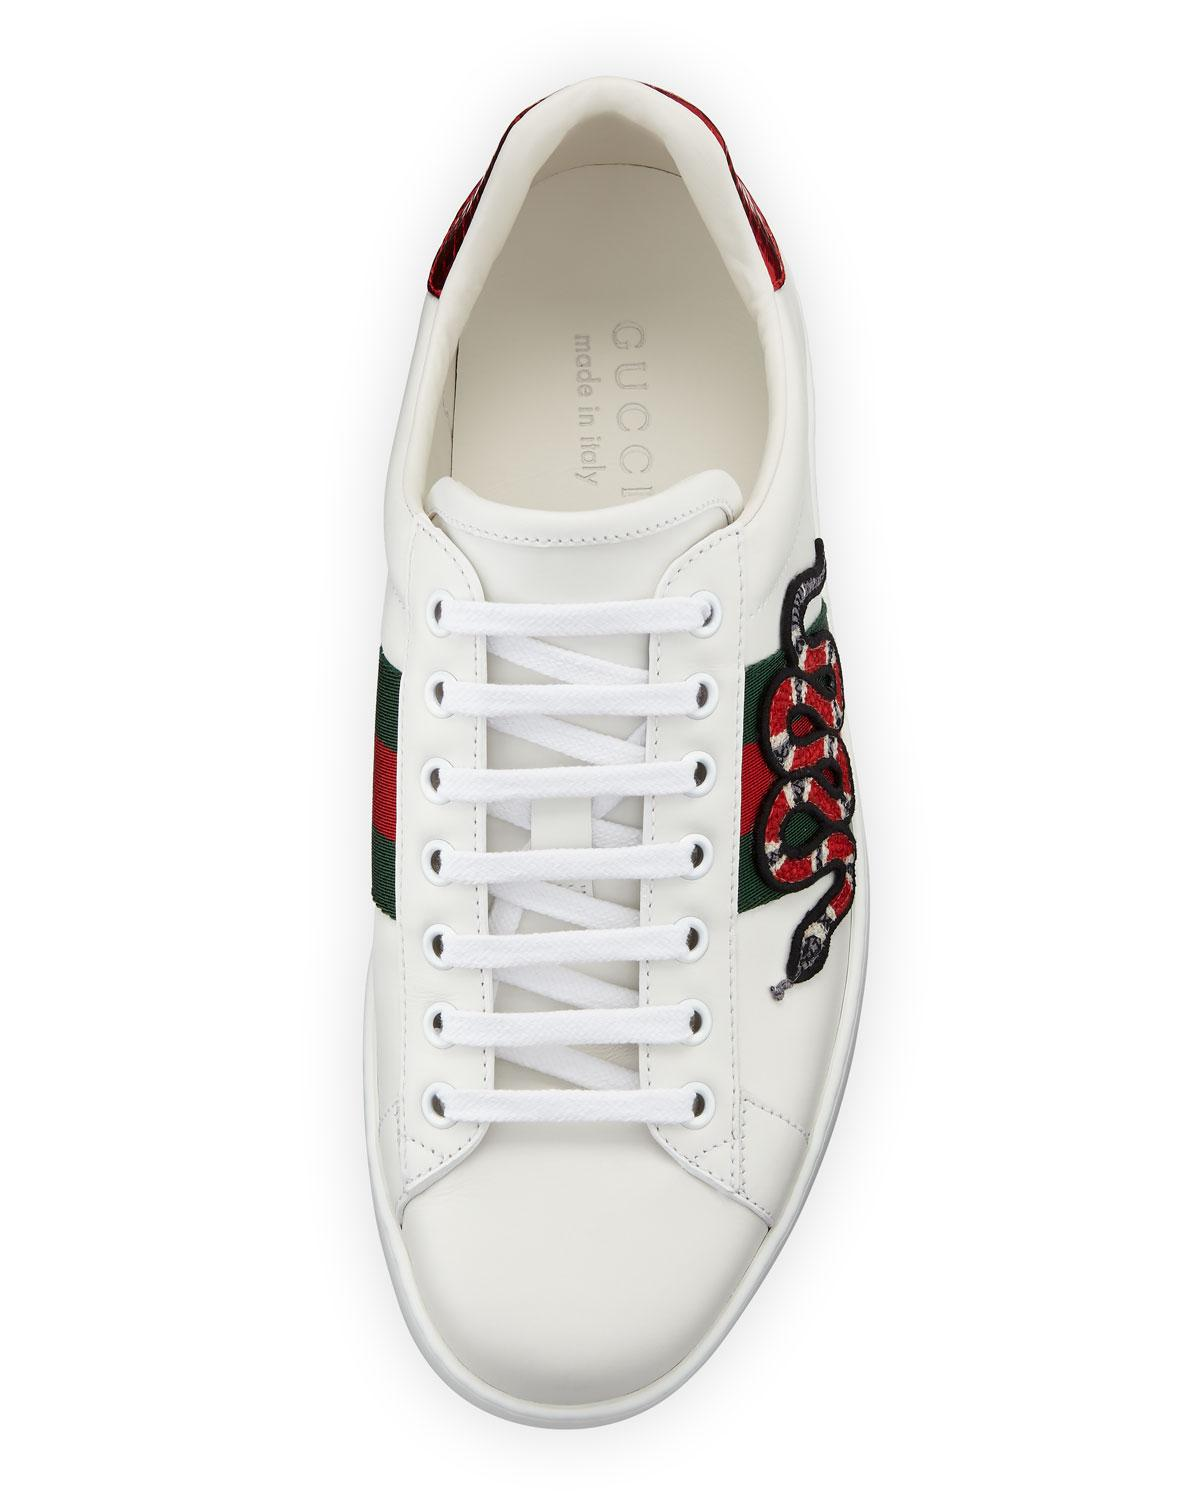 77a3834a405 Lyst - Gucci New Ace Men s Snake Sneakers in White for Men